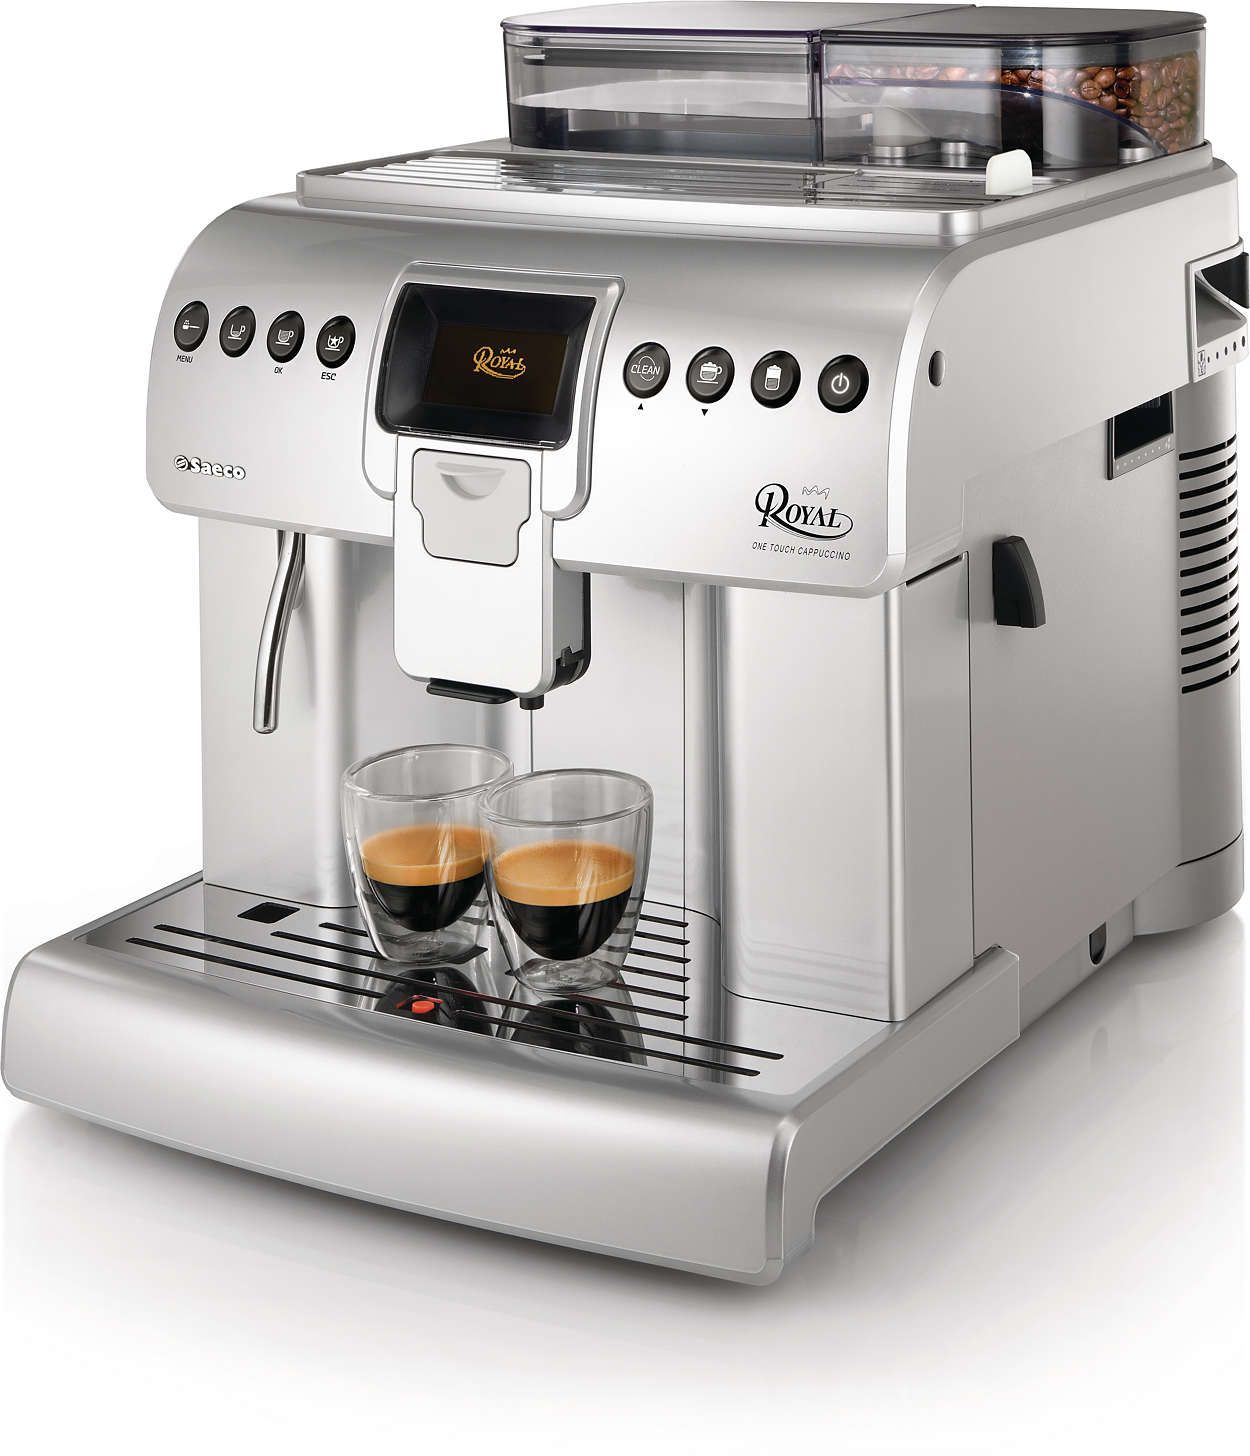 royal super automatic espresso machine hd8930 47 saeco. Black Bedroom Furniture Sets. Home Design Ideas